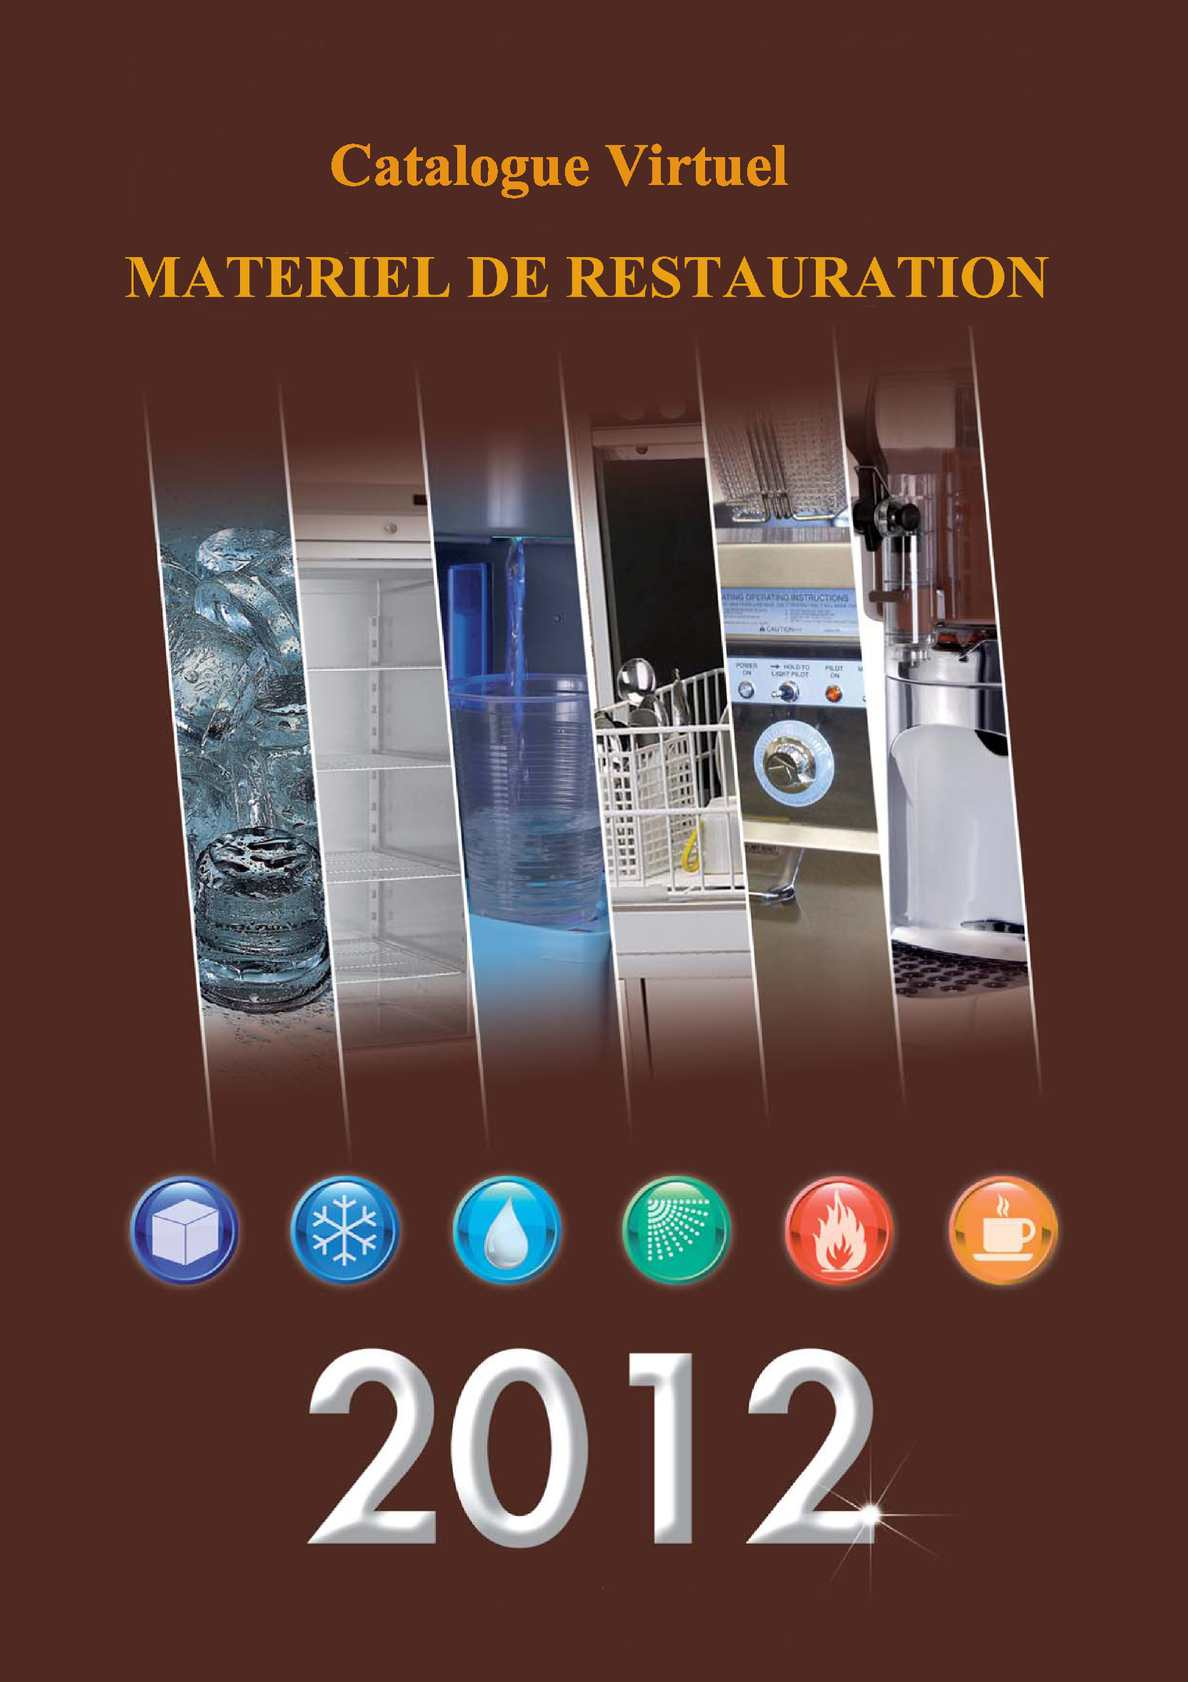 Calam o catalogue virtuel du mat riel professionnel de for Materiel de restauration professionnelle